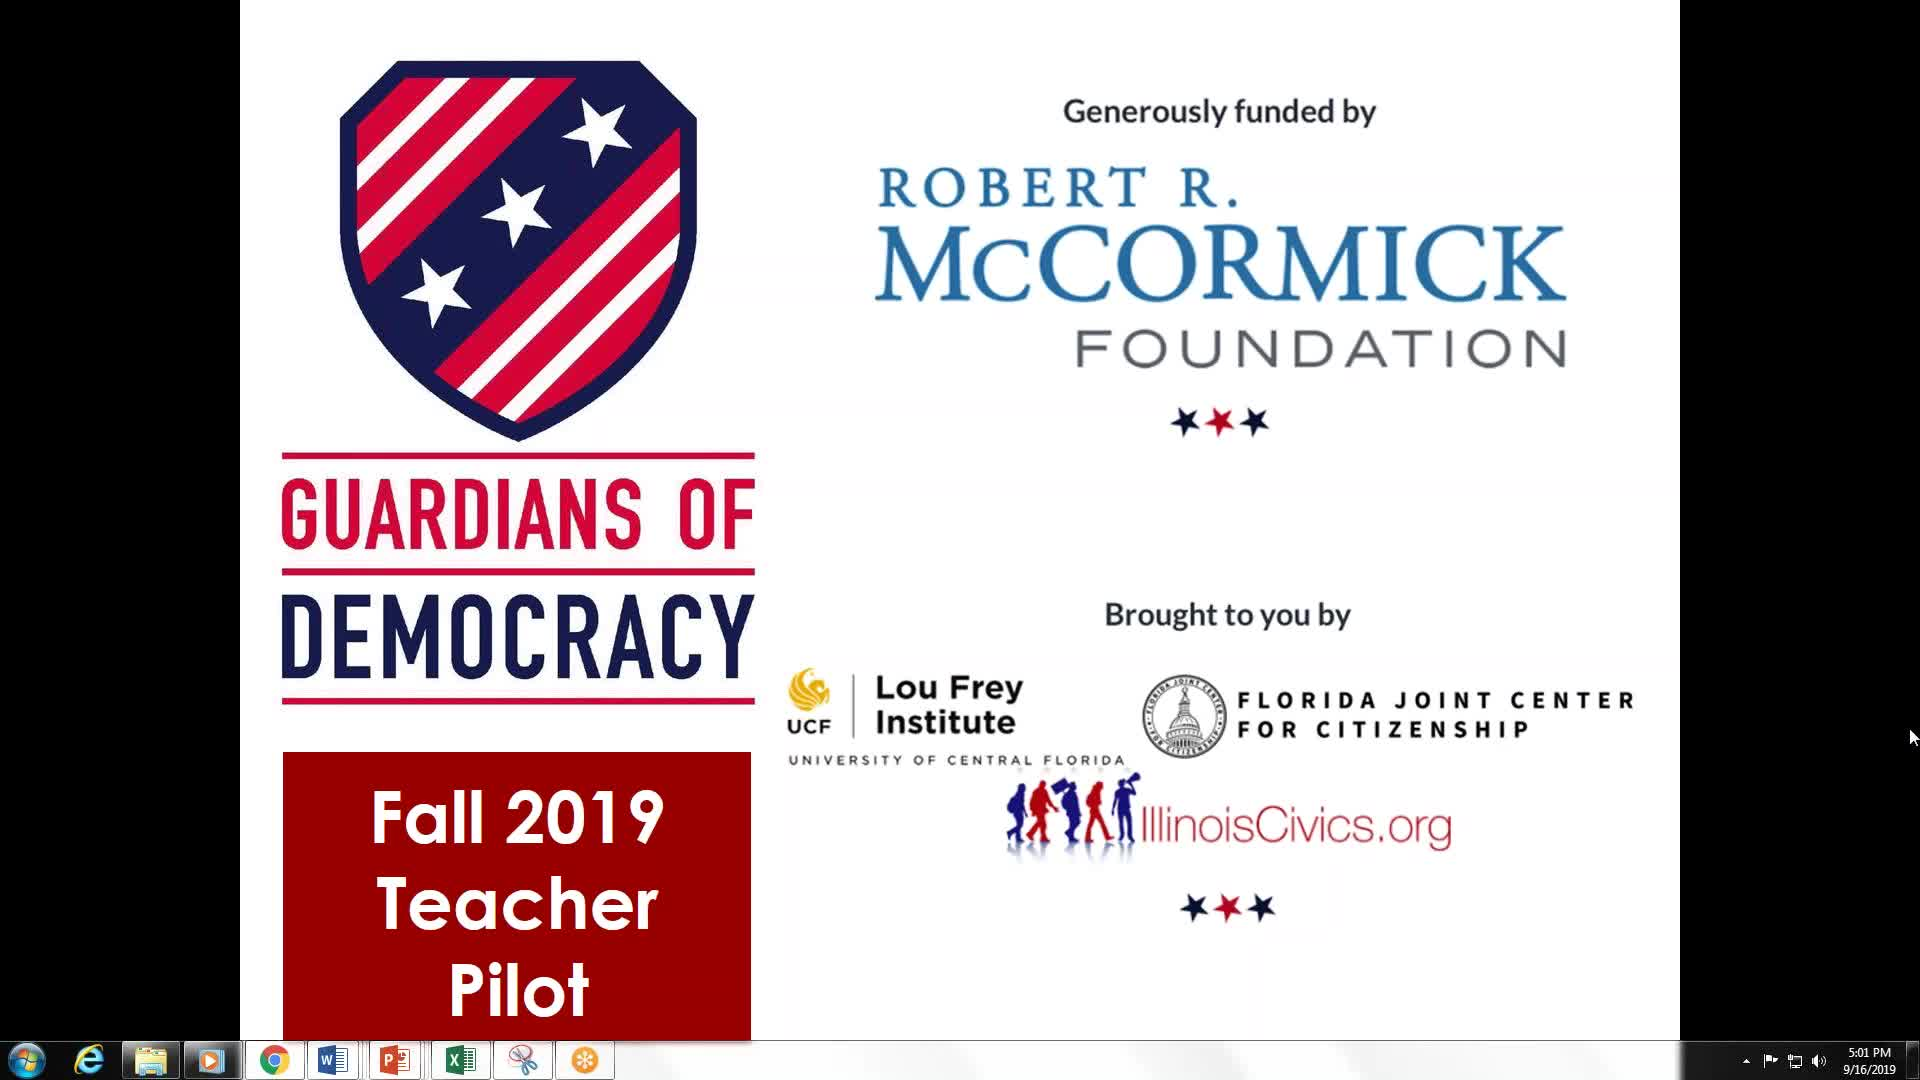 16 Sep 19 Guardians of Democracy Pilot Webinar